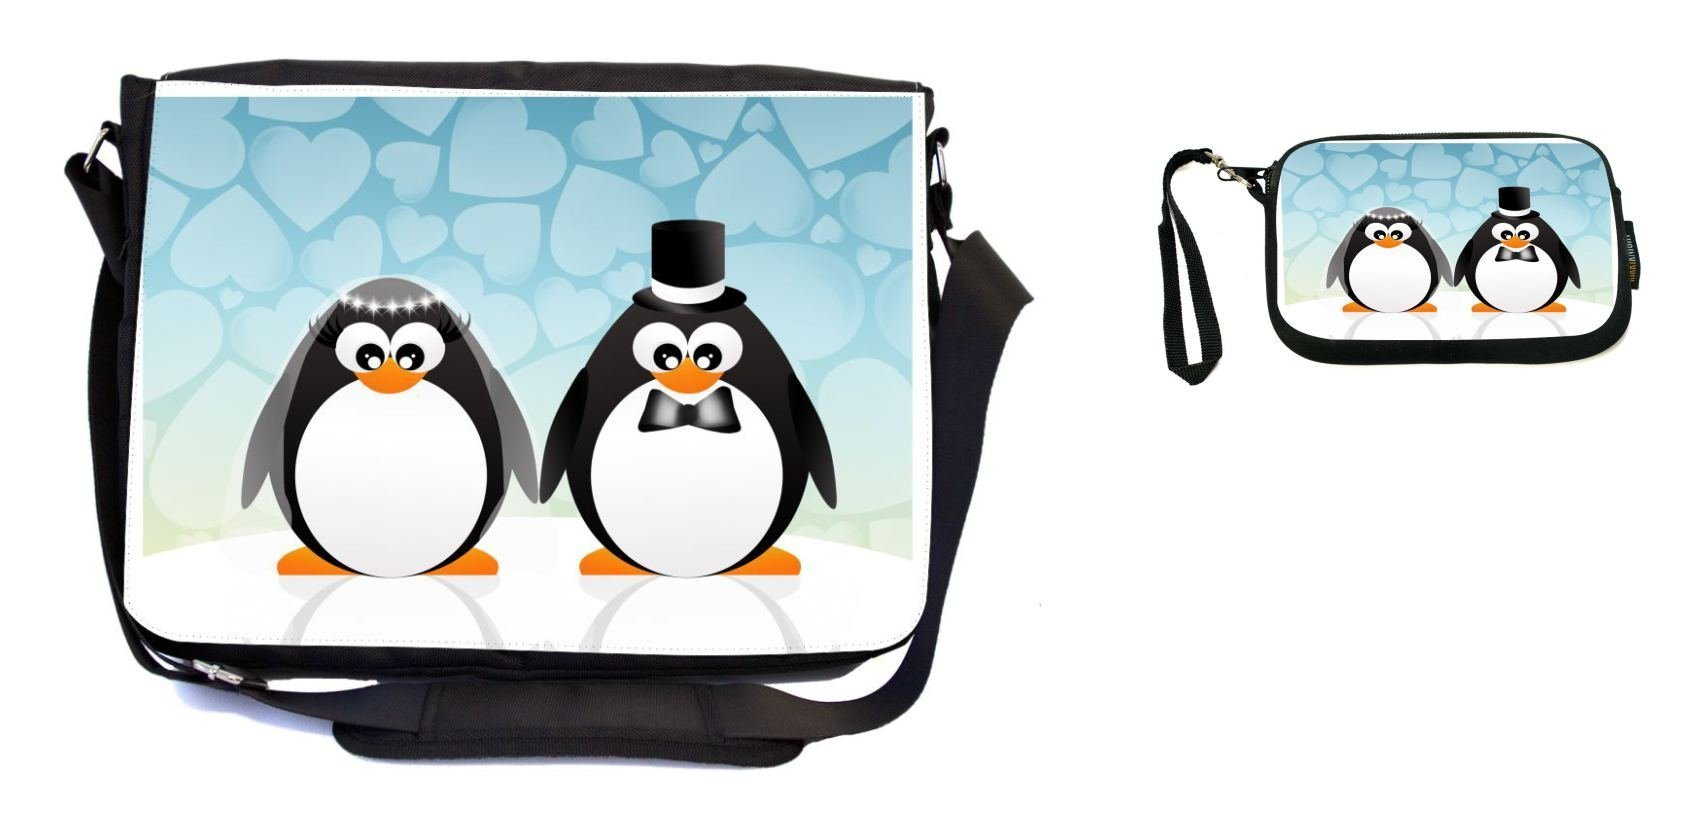 Rikki Knight Penguins in Love Wedding Illustration Design Messenger Bag - School Bag - Laptop Bag - with Padded Insert - Includes UKBK Premium Coin Purse